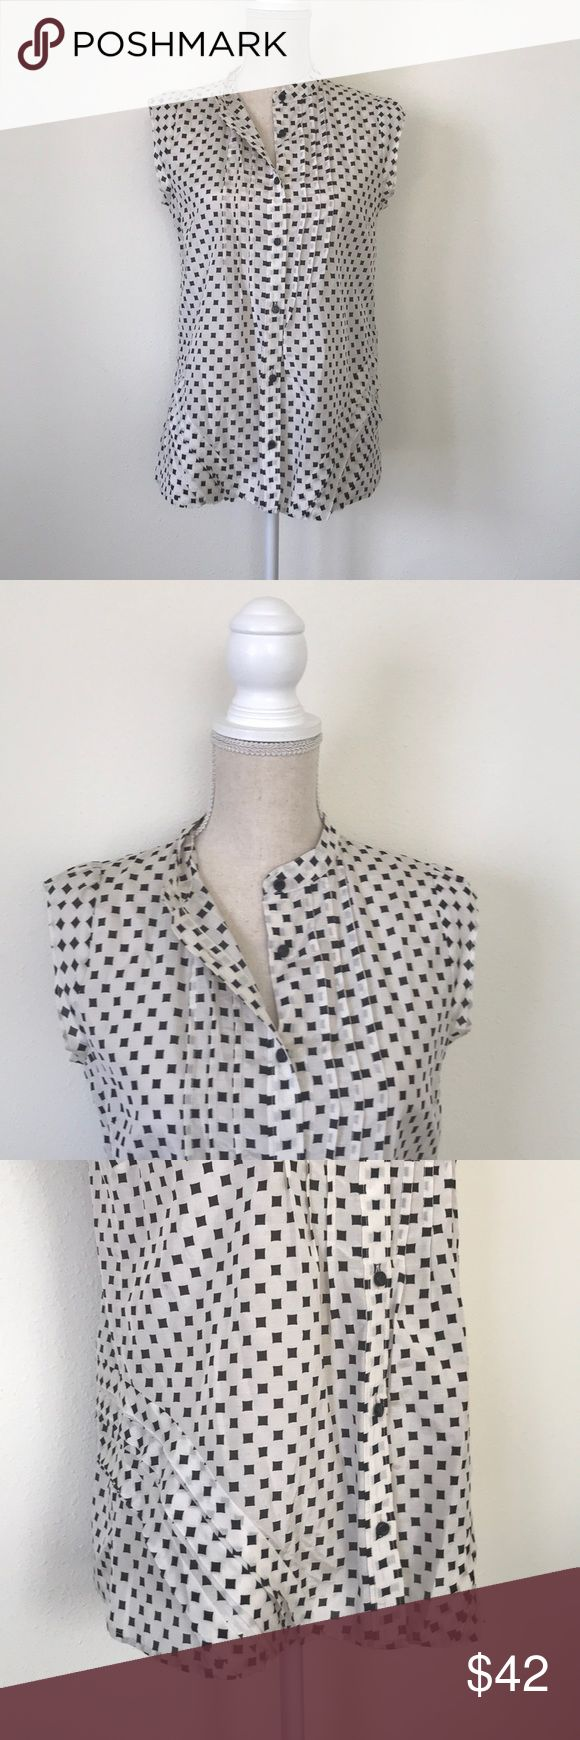 Marc by Marc Jacobs Button Down Blouse Pre-loved  Bone color with black squares  (off white) Pleats on front and sides Cotton silk blend  Size XS but runs big Very lightweight Adorable tucked into dress pants or a skirt  Offers welcome! Thanks 💞 Marc By Marc Jacobs Tops Button Down Shirts